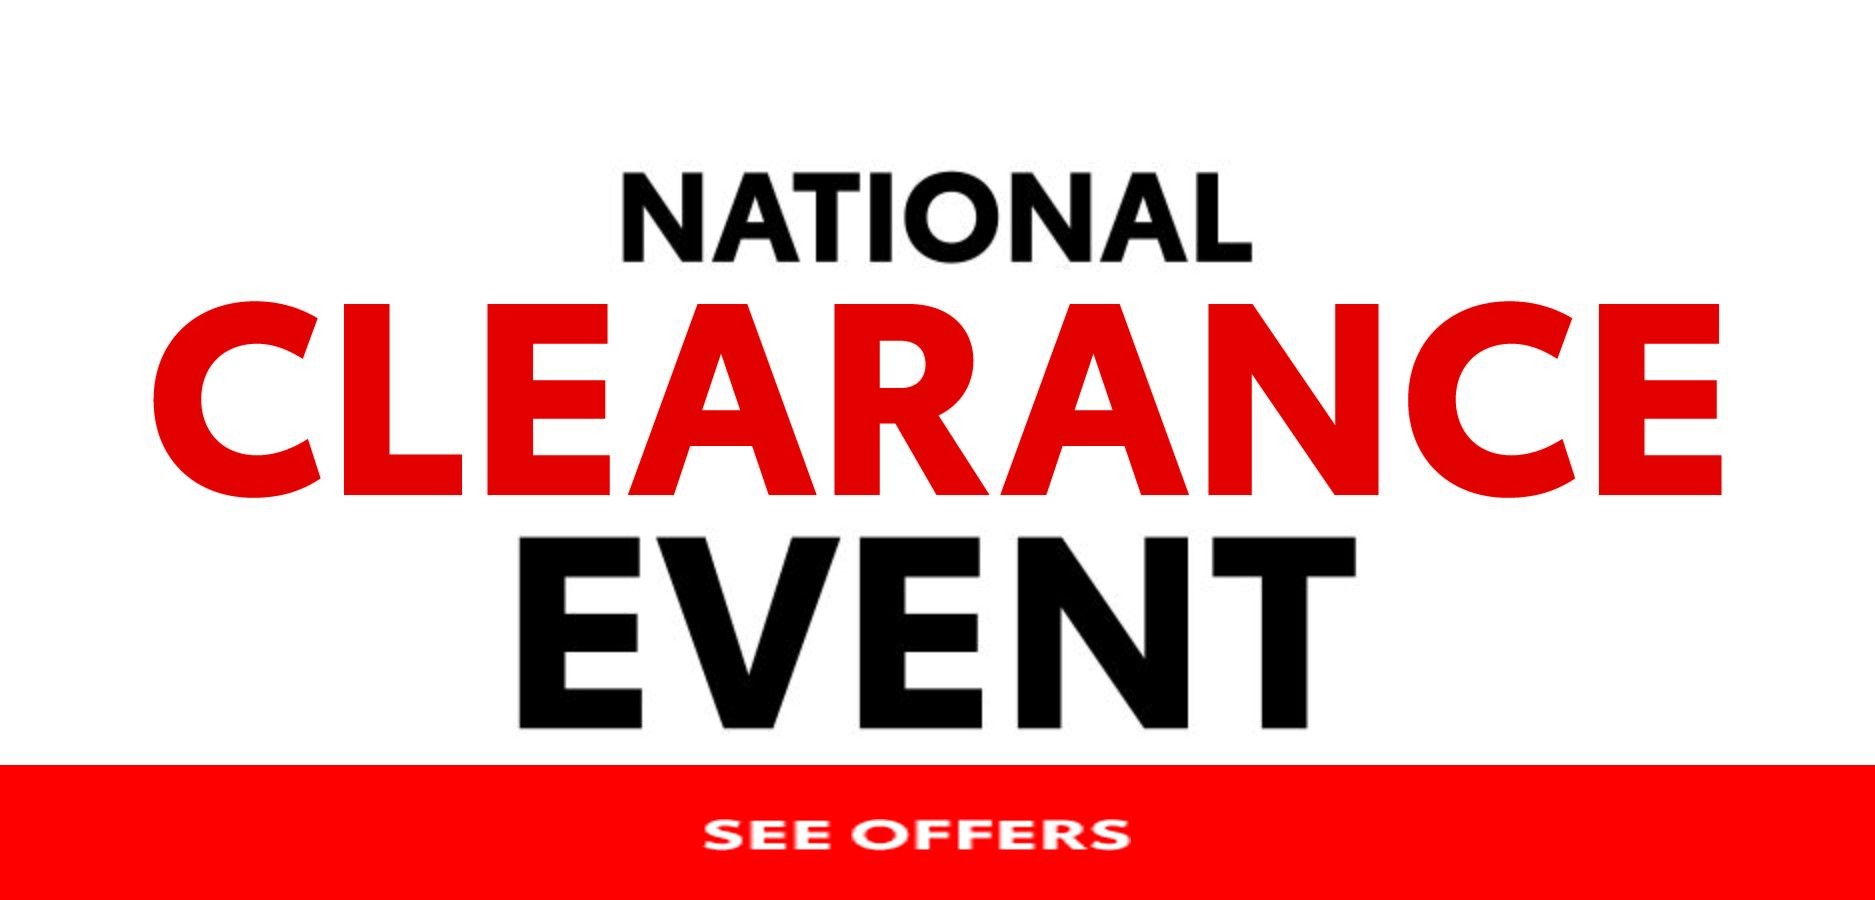 National Clearance Event at {{meta.website.name}}